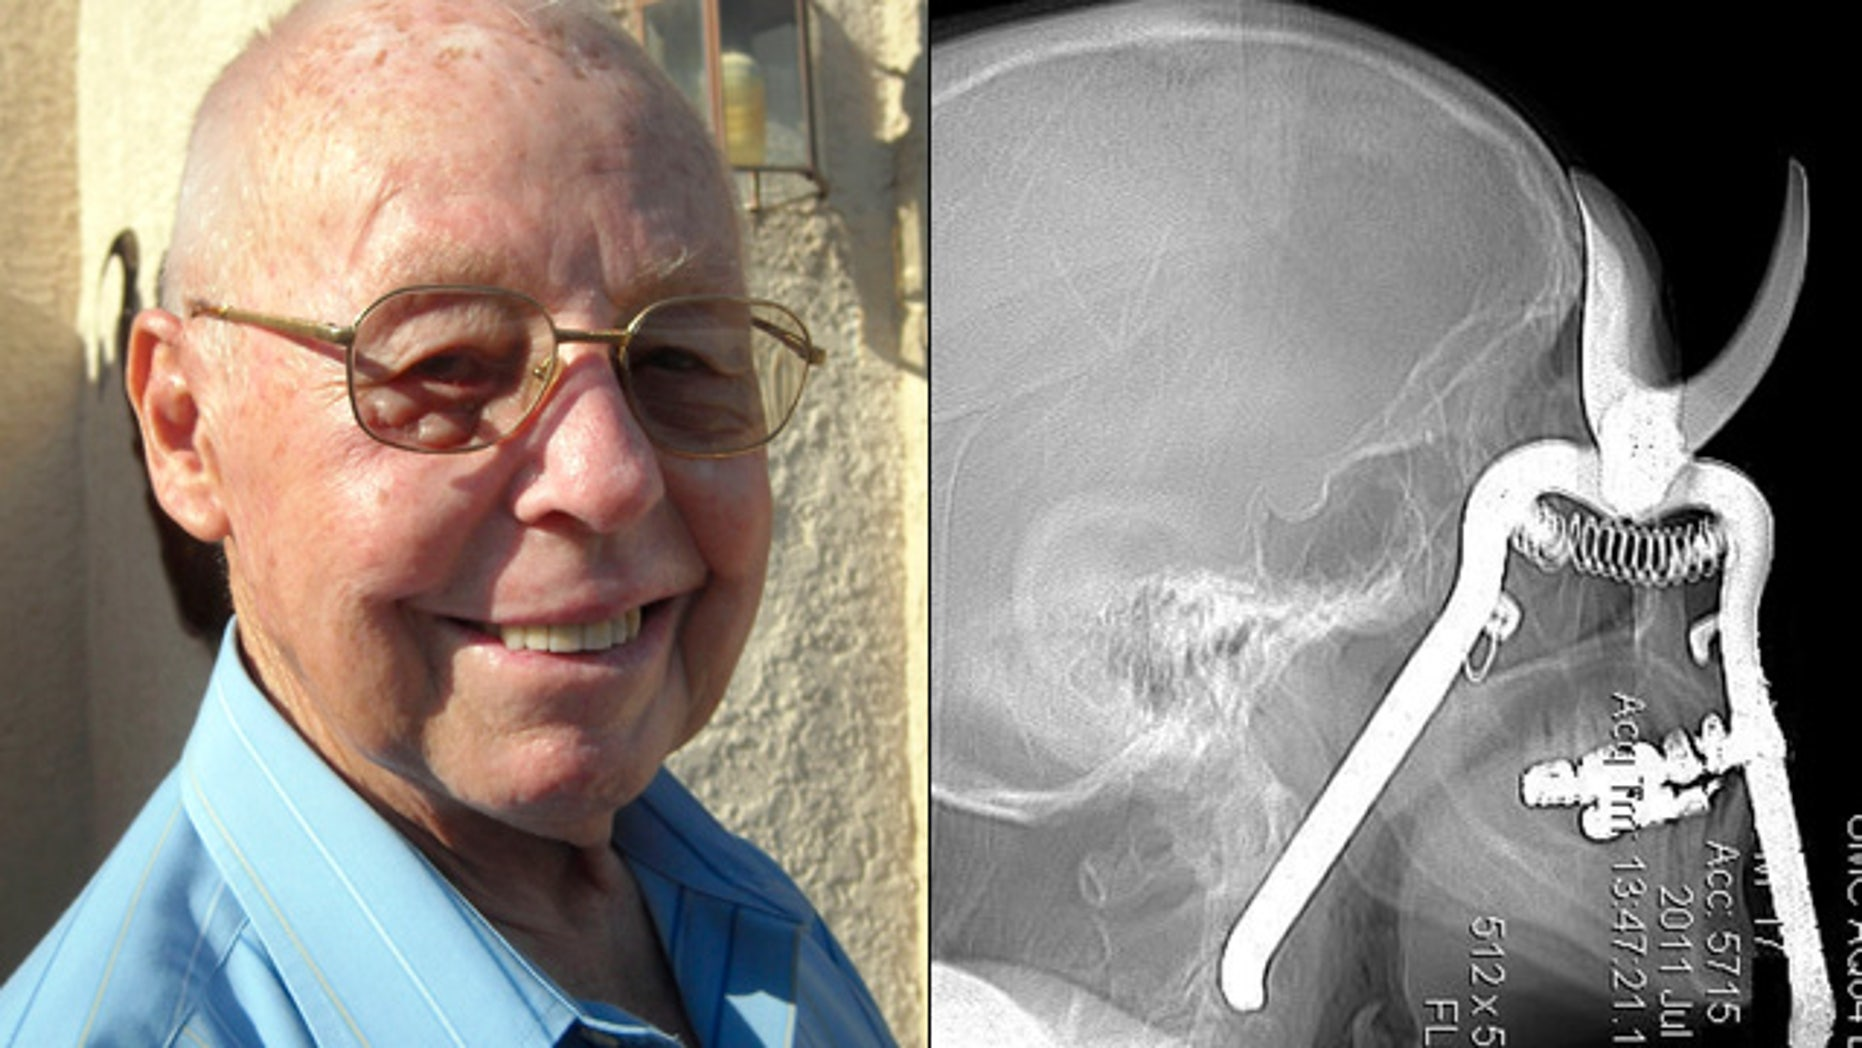 From left, Leroy Luetscher is seen a month after pruning shears pierced through his eye socket.